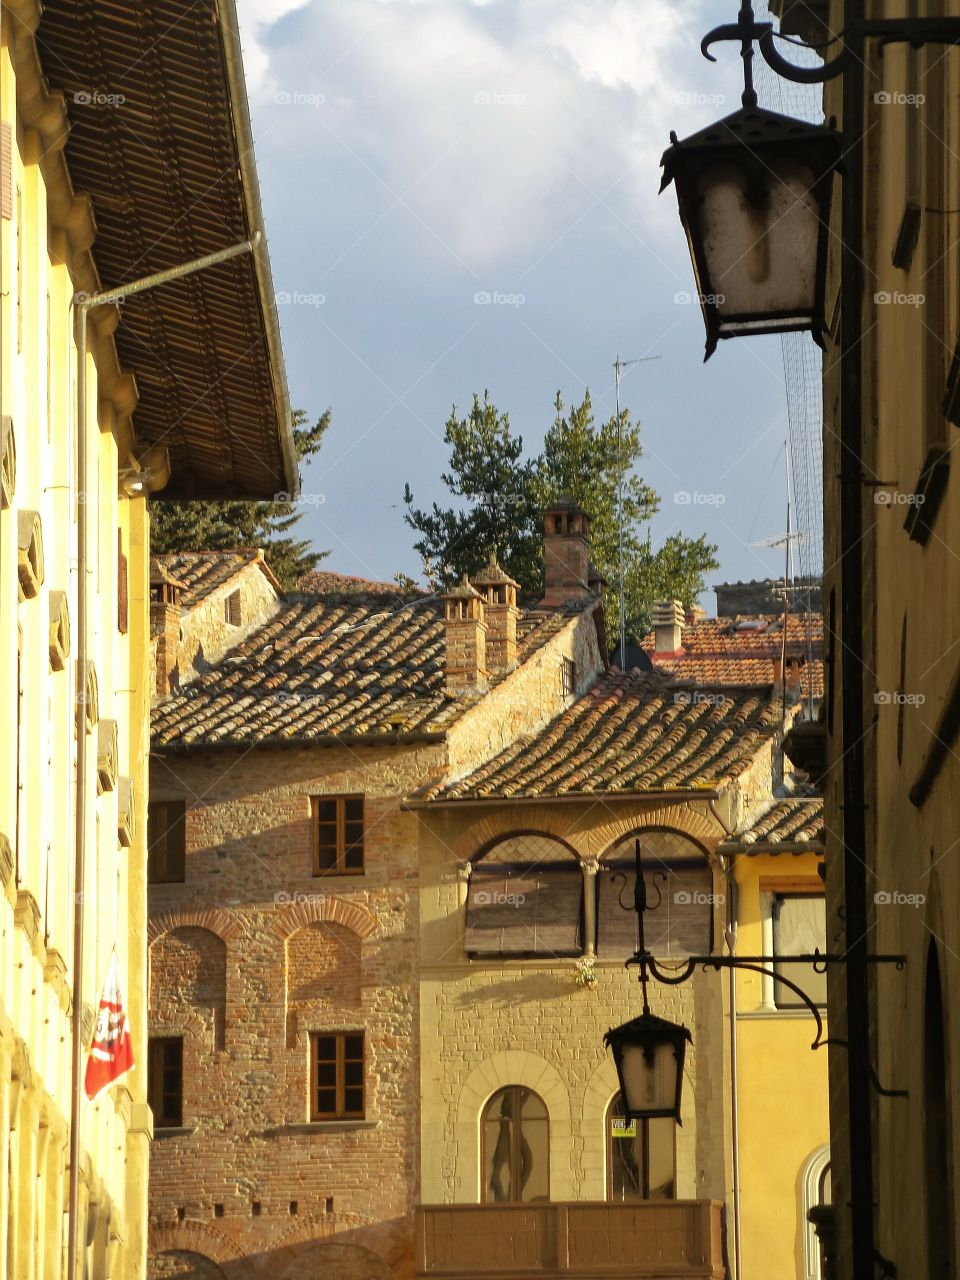 In Arezzo.... Just a fast shot of this wonderful Tuscan town...